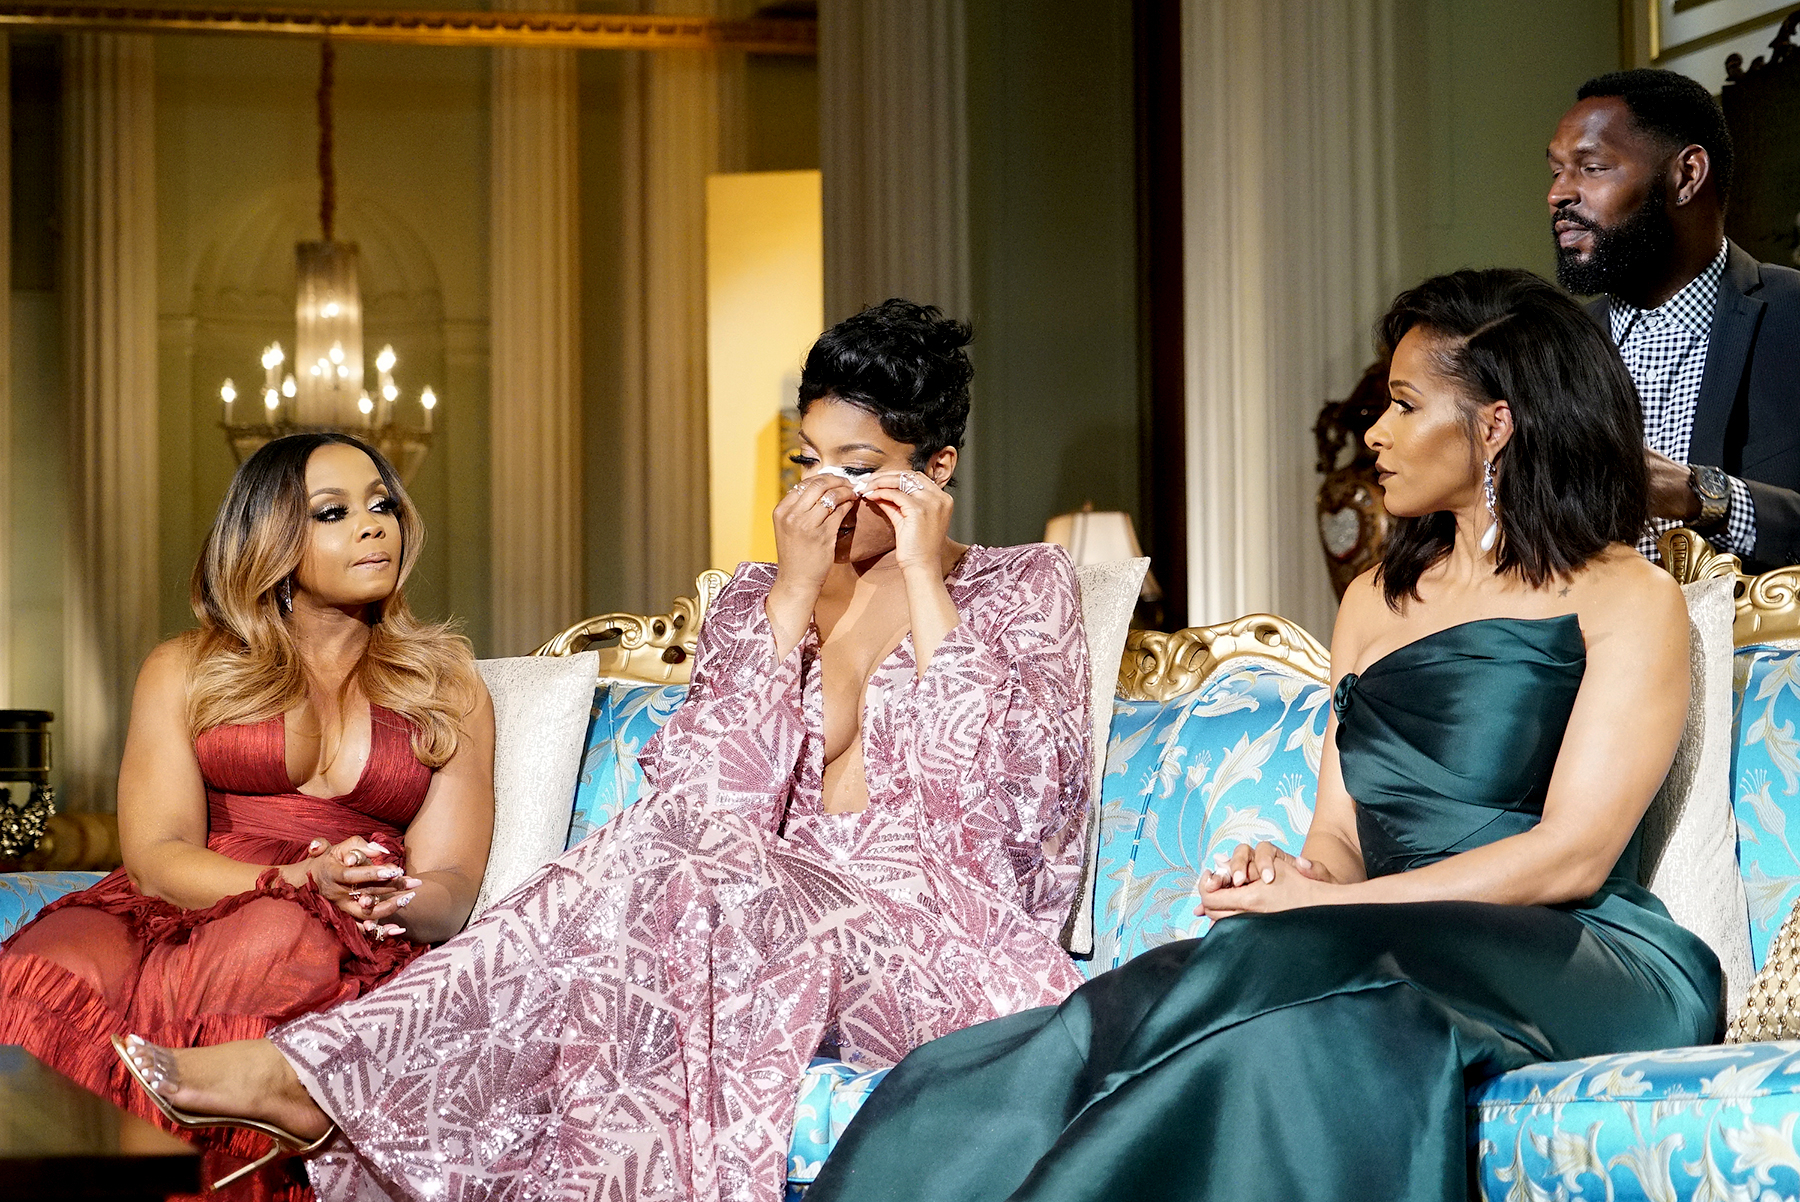 Phaedra Parks, Porsha Williams, and Sheree Whitfield on The Real Housewives of Atlanta Reunion.